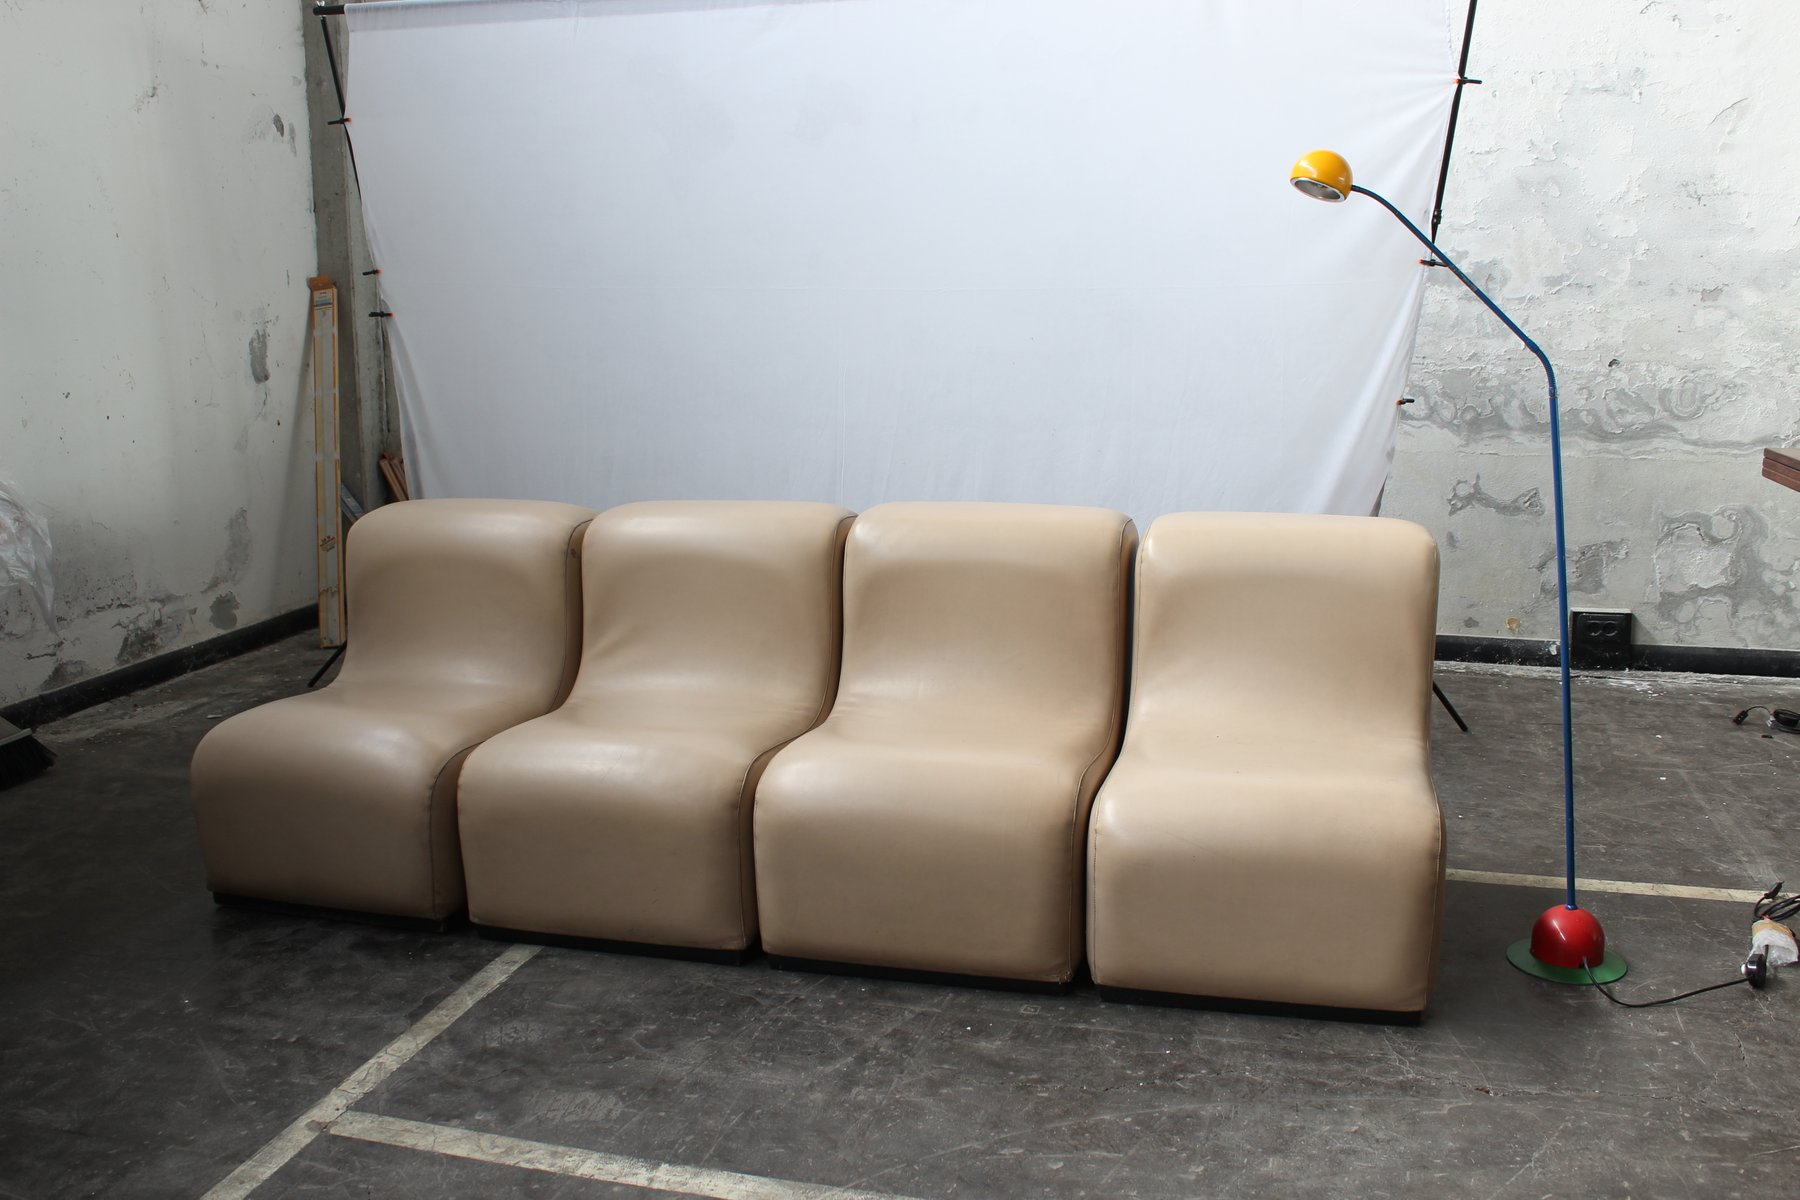 Vintage Italian Modular Sofa 1970s For Sale At Pamono